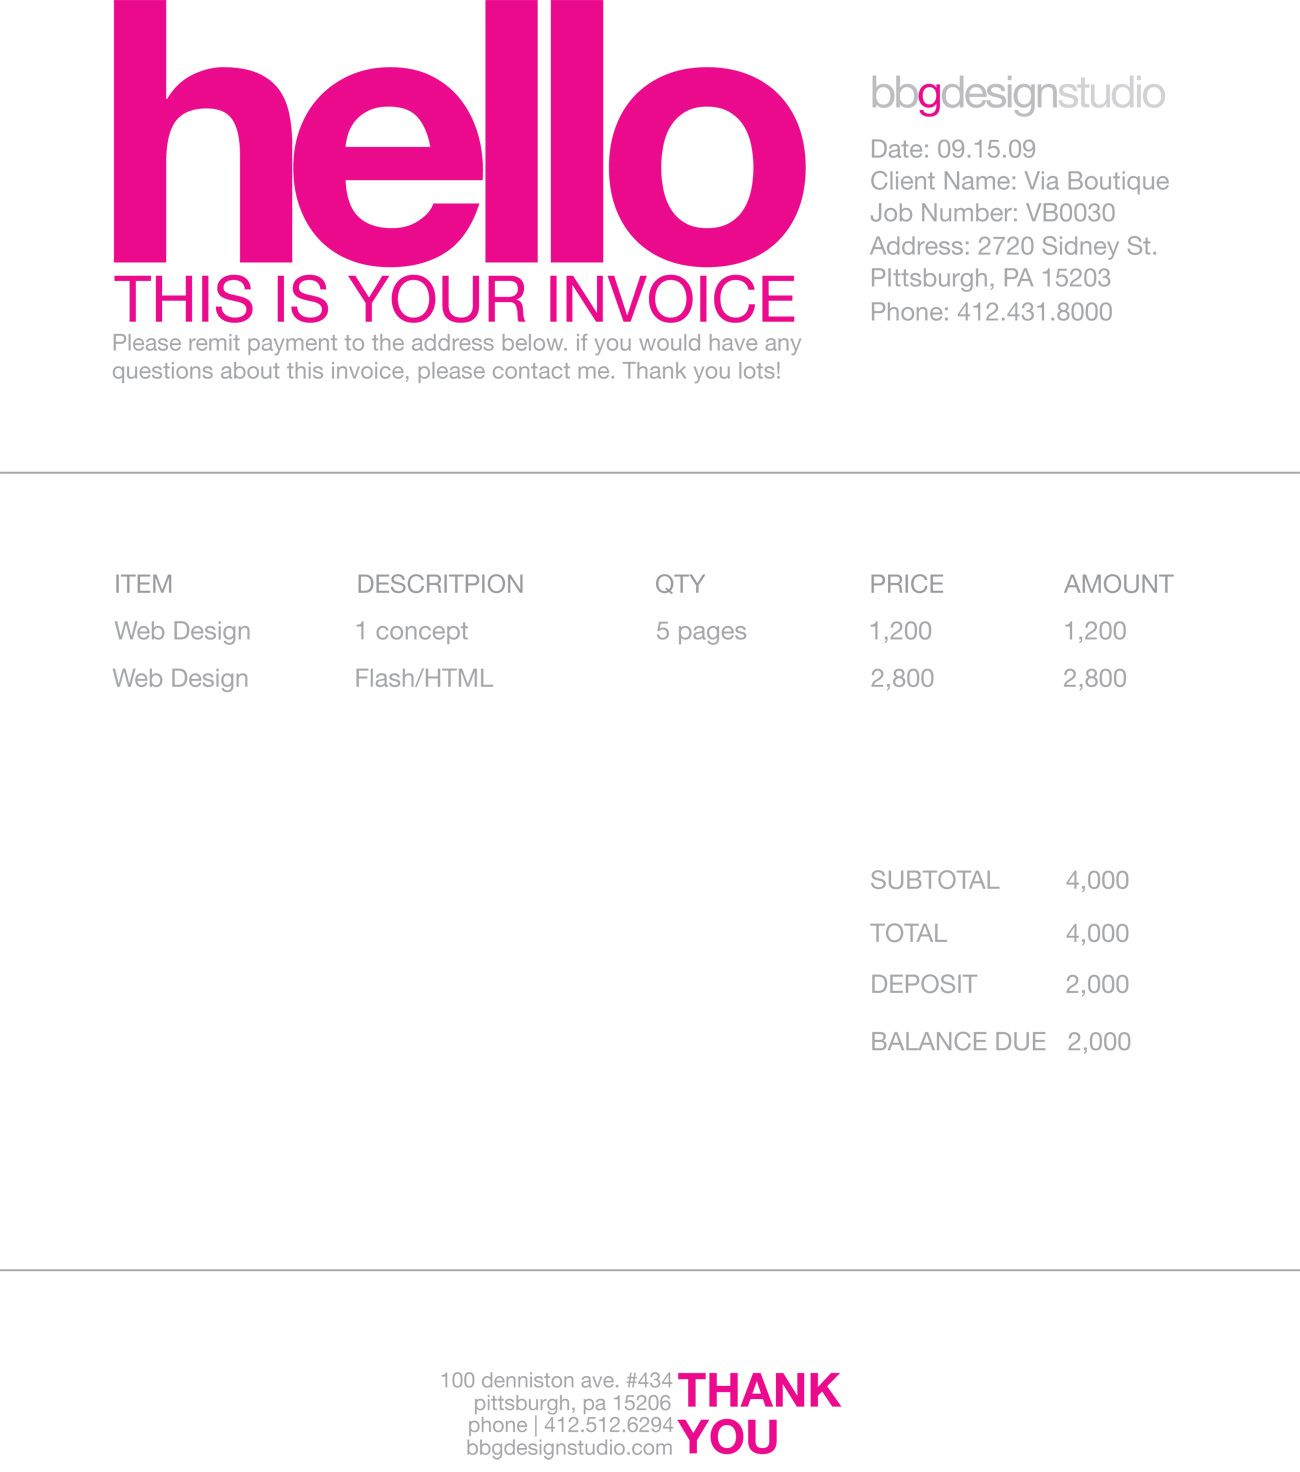 Pigbrotherus  Pleasant  Images About Invoice Design On Pinterest With Heavenly Mdx Invoice Besides Invoice Template For Free Furthermore Law Firm Invoice With Astonishing Invoice And Billing Software Also Ram Invoice Pricing In Addition Magento Invoice And Simple Invoice Example As Well As Supplier Invoice Additionally Invoice Apps For Iphone From Pinterestcom With Pigbrotherus  Heavenly  Images About Invoice Design On Pinterest With Astonishing Mdx Invoice Besides Invoice Template For Free Furthermore Law Firm Invoice And Pleasant Invoice And Billing Software Also Ram Invoice Pricing In Addition Magento Invoice From Pinterestcom